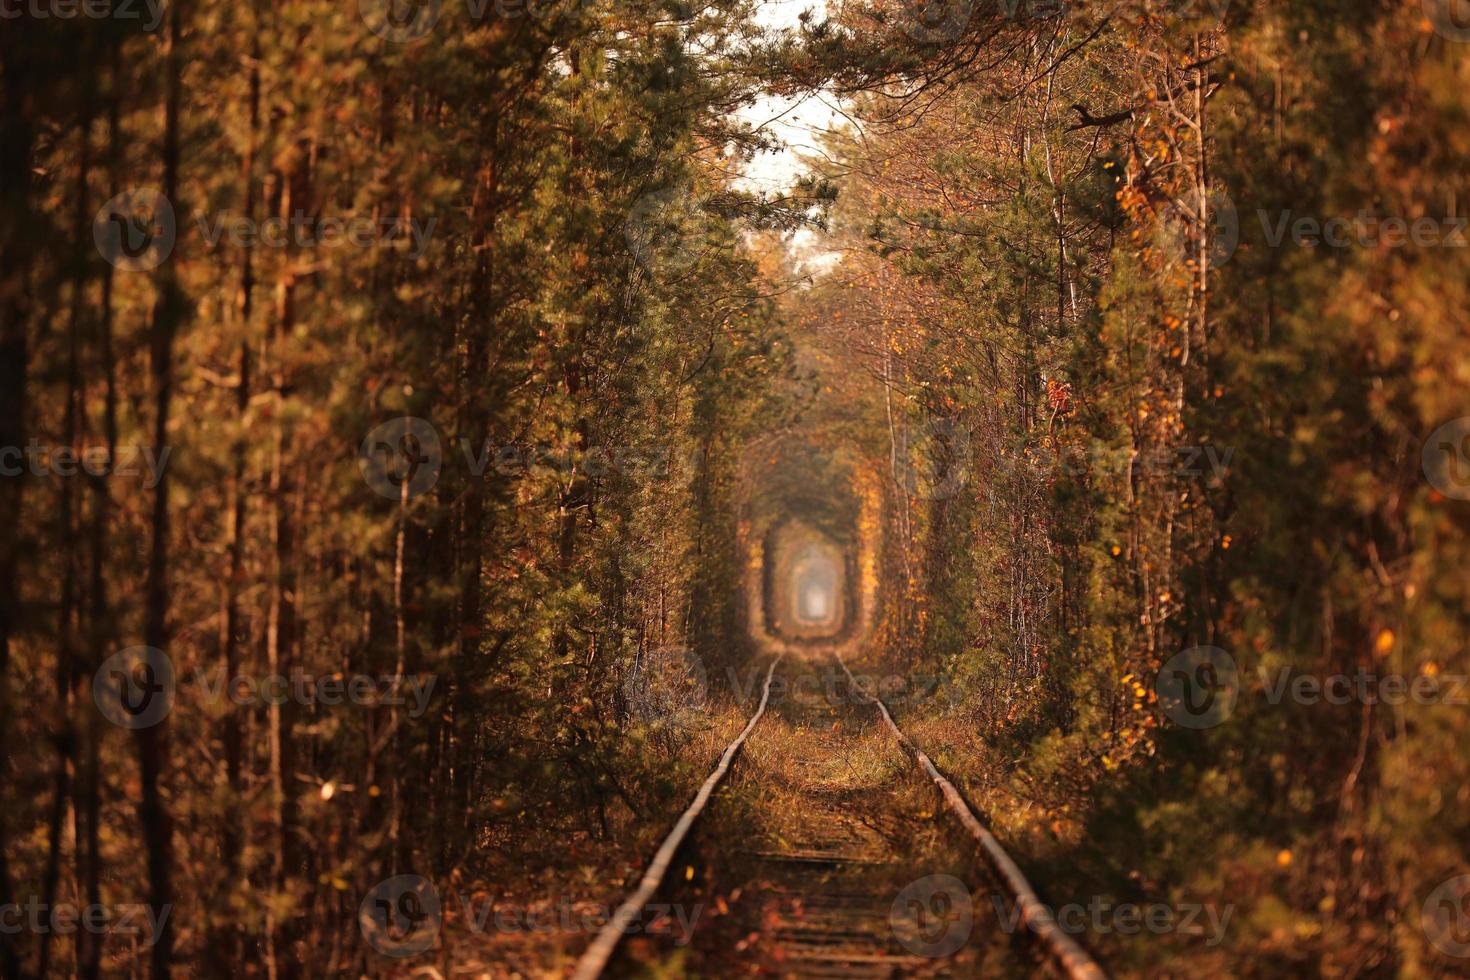 Tunnel of Love. Tunnel of Love in Ukraine. A railway in the autumn forest tunnel of love. Old mysterious forest. photo